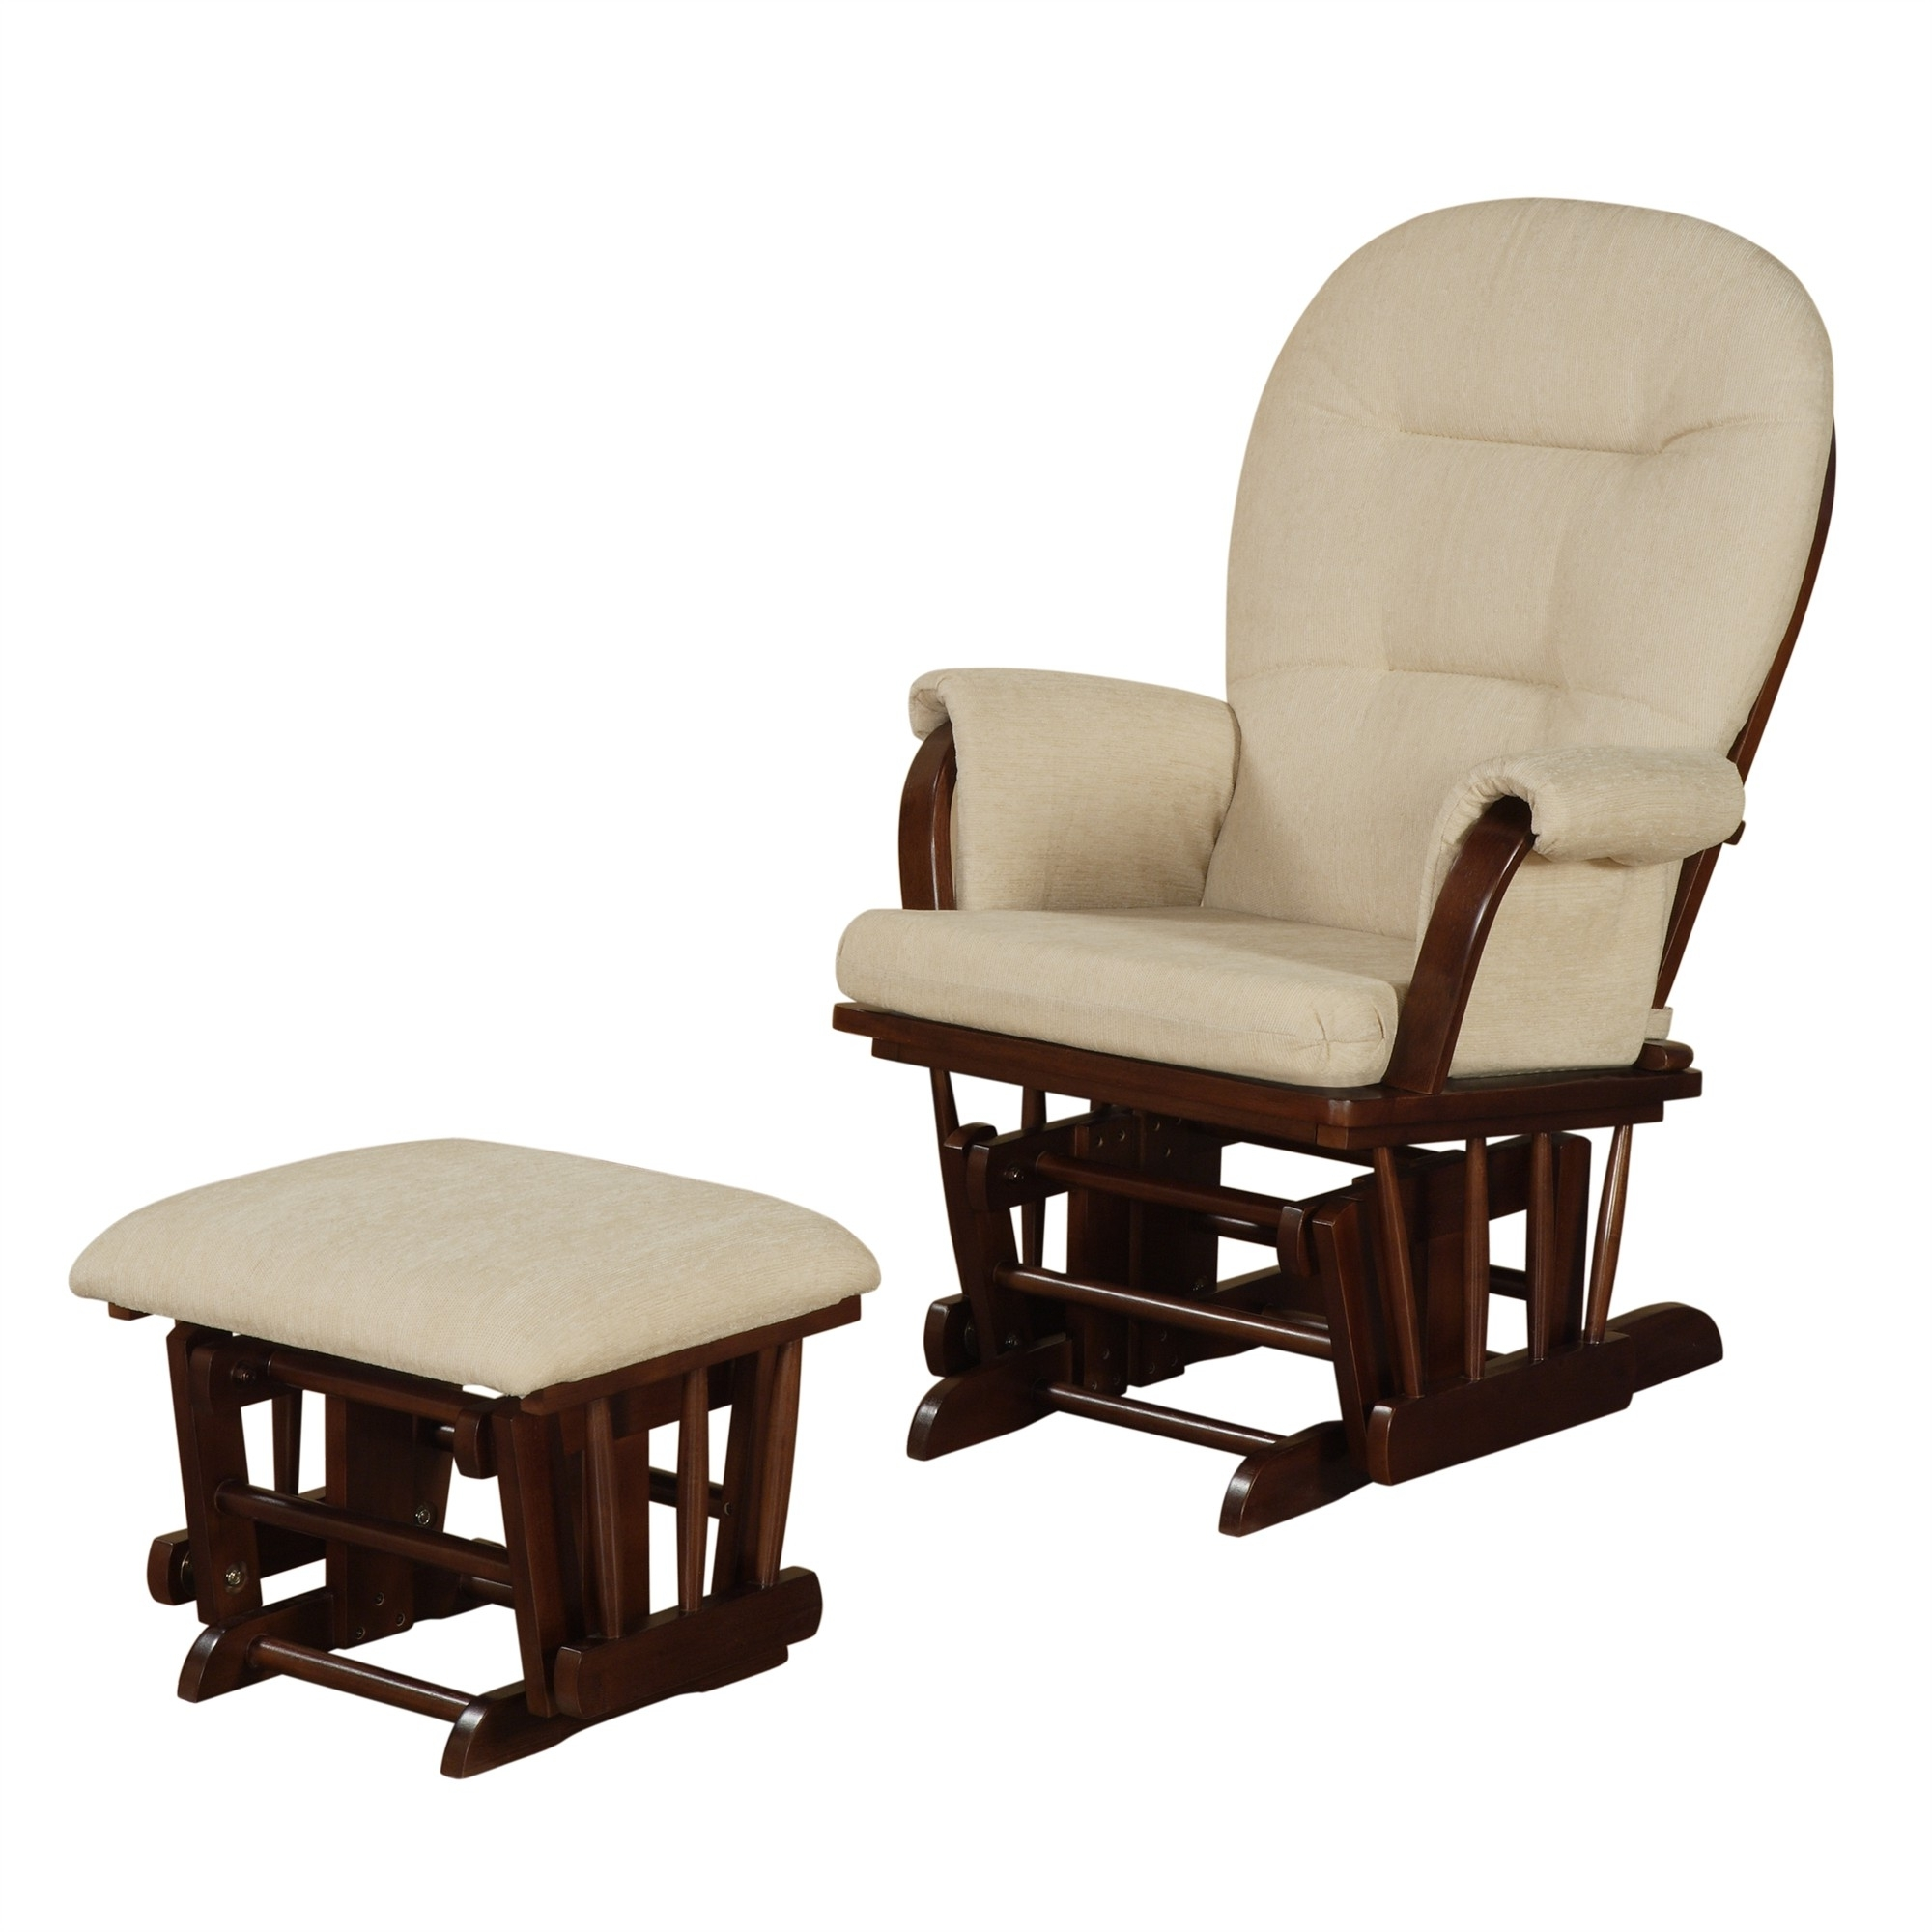 Trendy Ottomans : Marvelous Furniture Rocking Chair With Ottoman Nursery Pertaining To Rocking Chairs With Footstool (View 13 of 15)